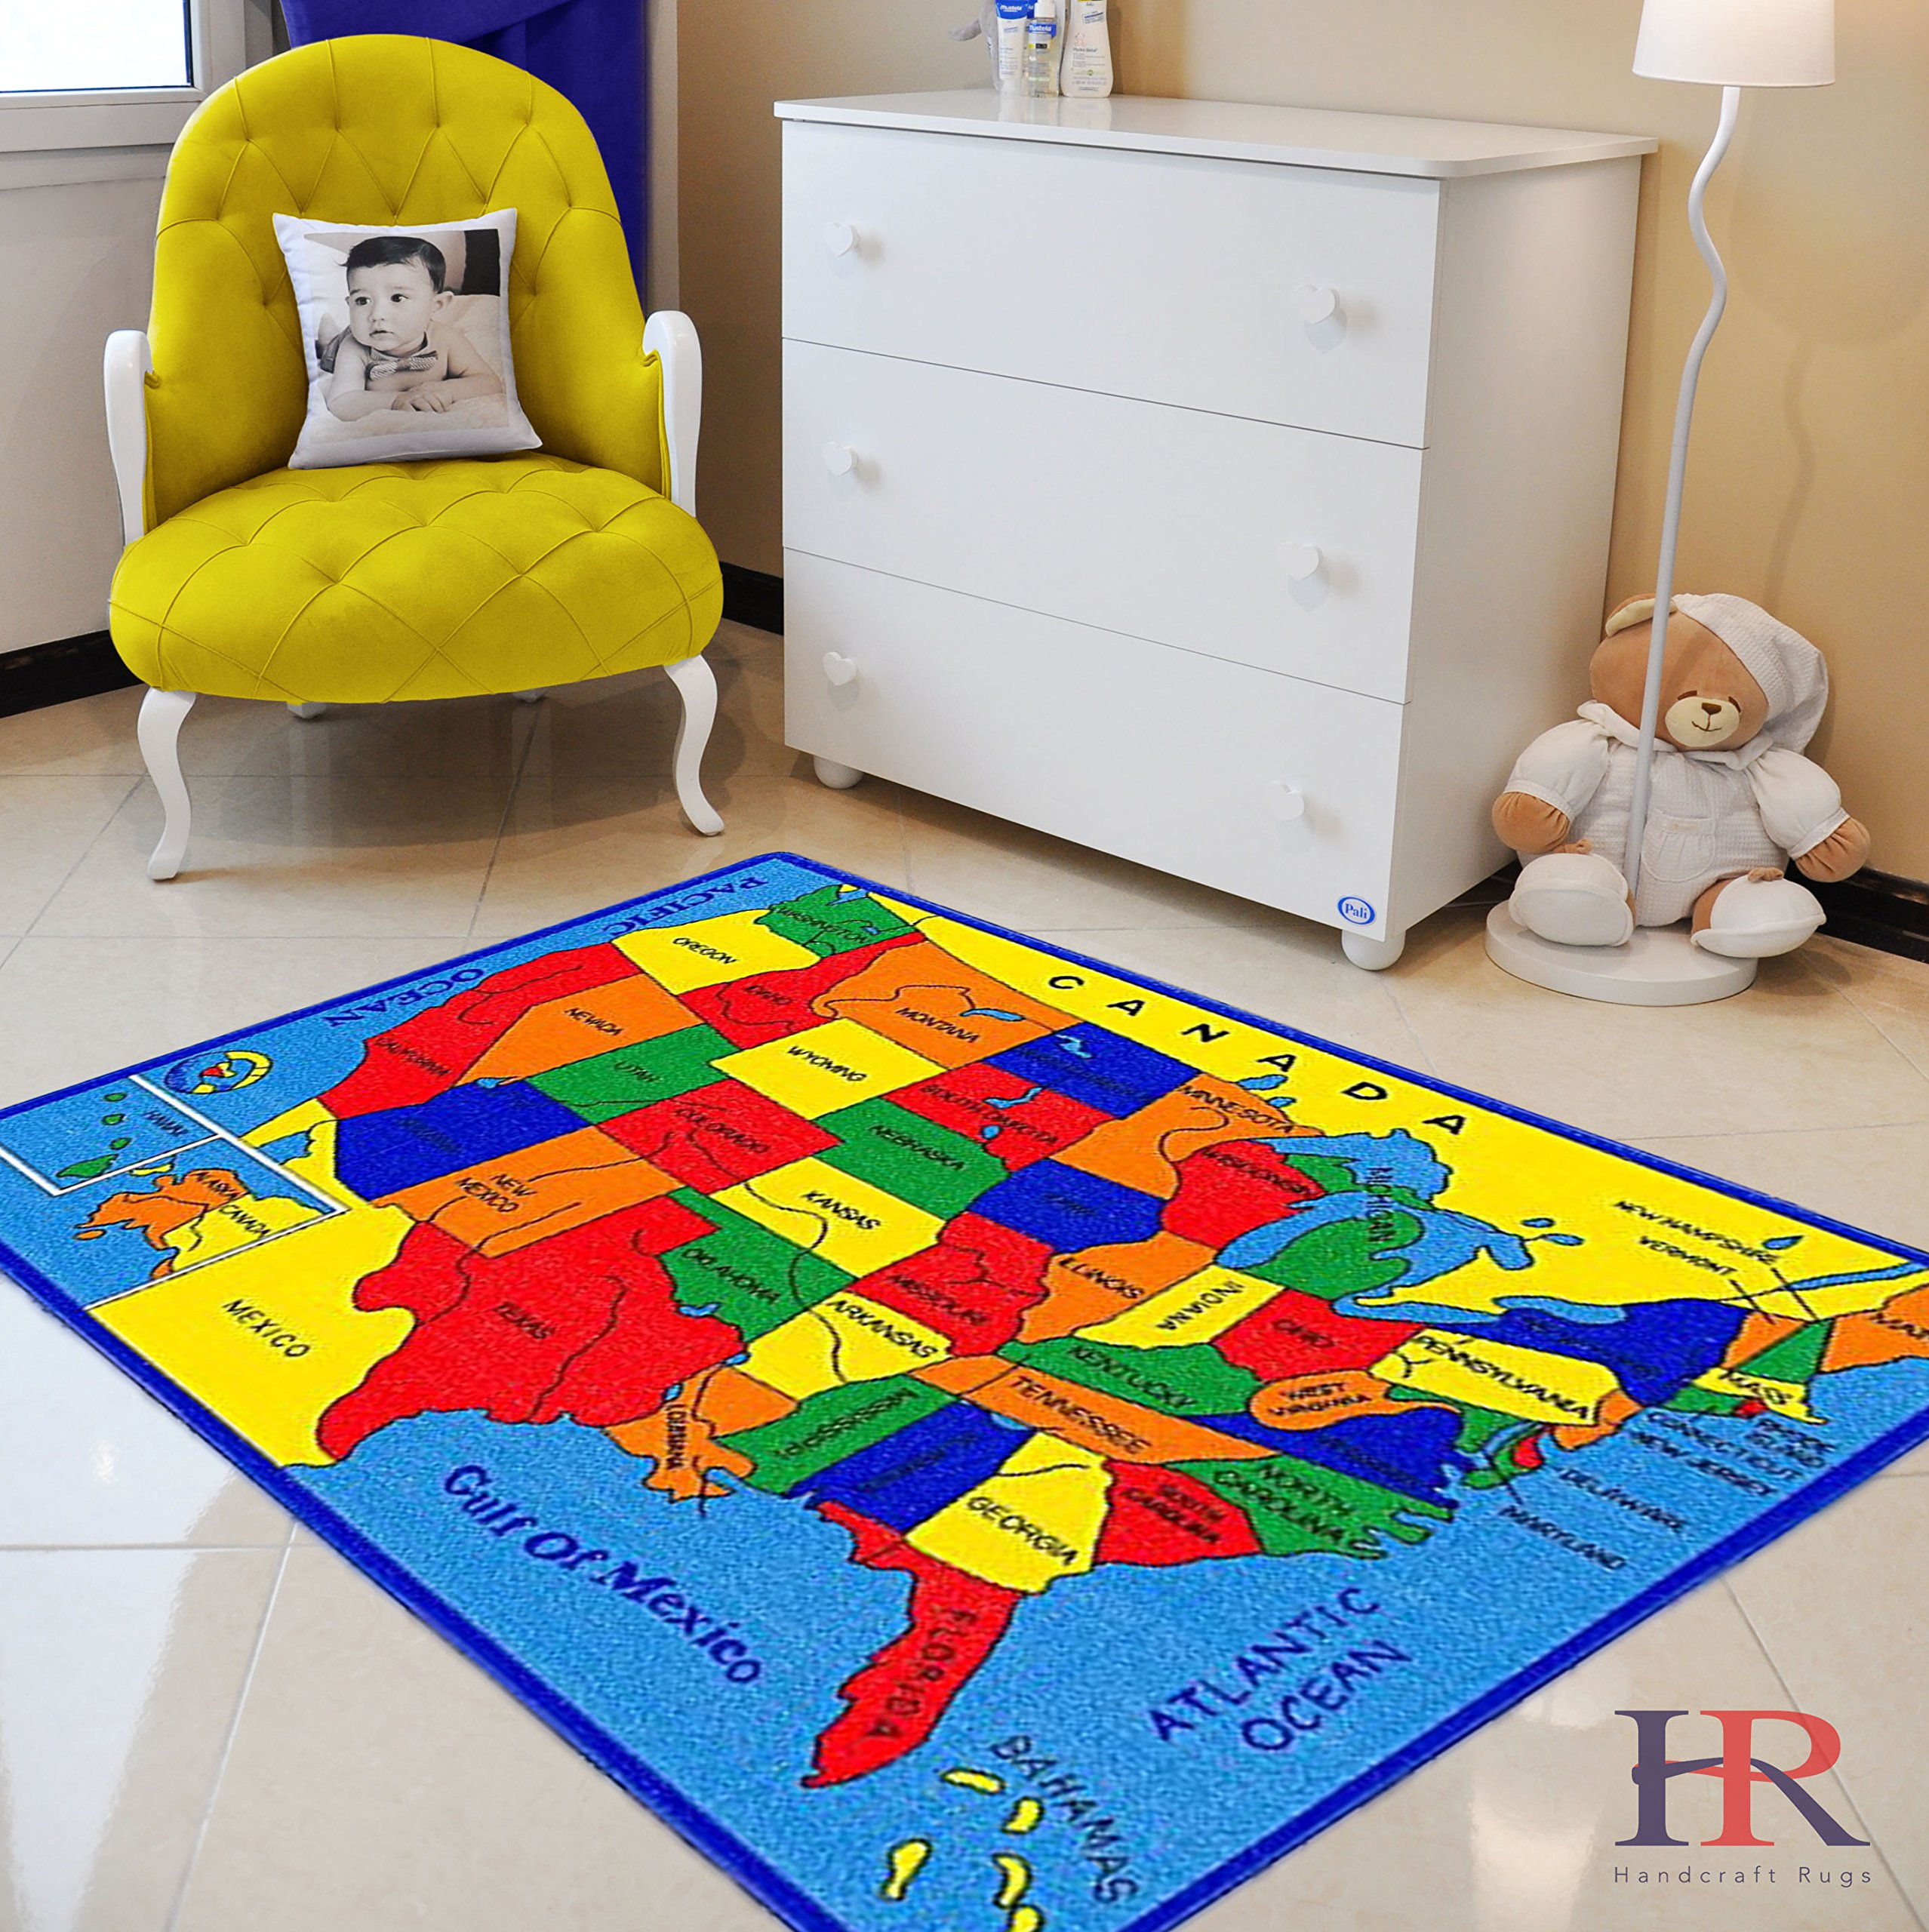 Handcraft Rugs U.S.A Map Non Slip Educational Kids Area Rug 8 ft by 10 ft by HANDCRAFT RUGS